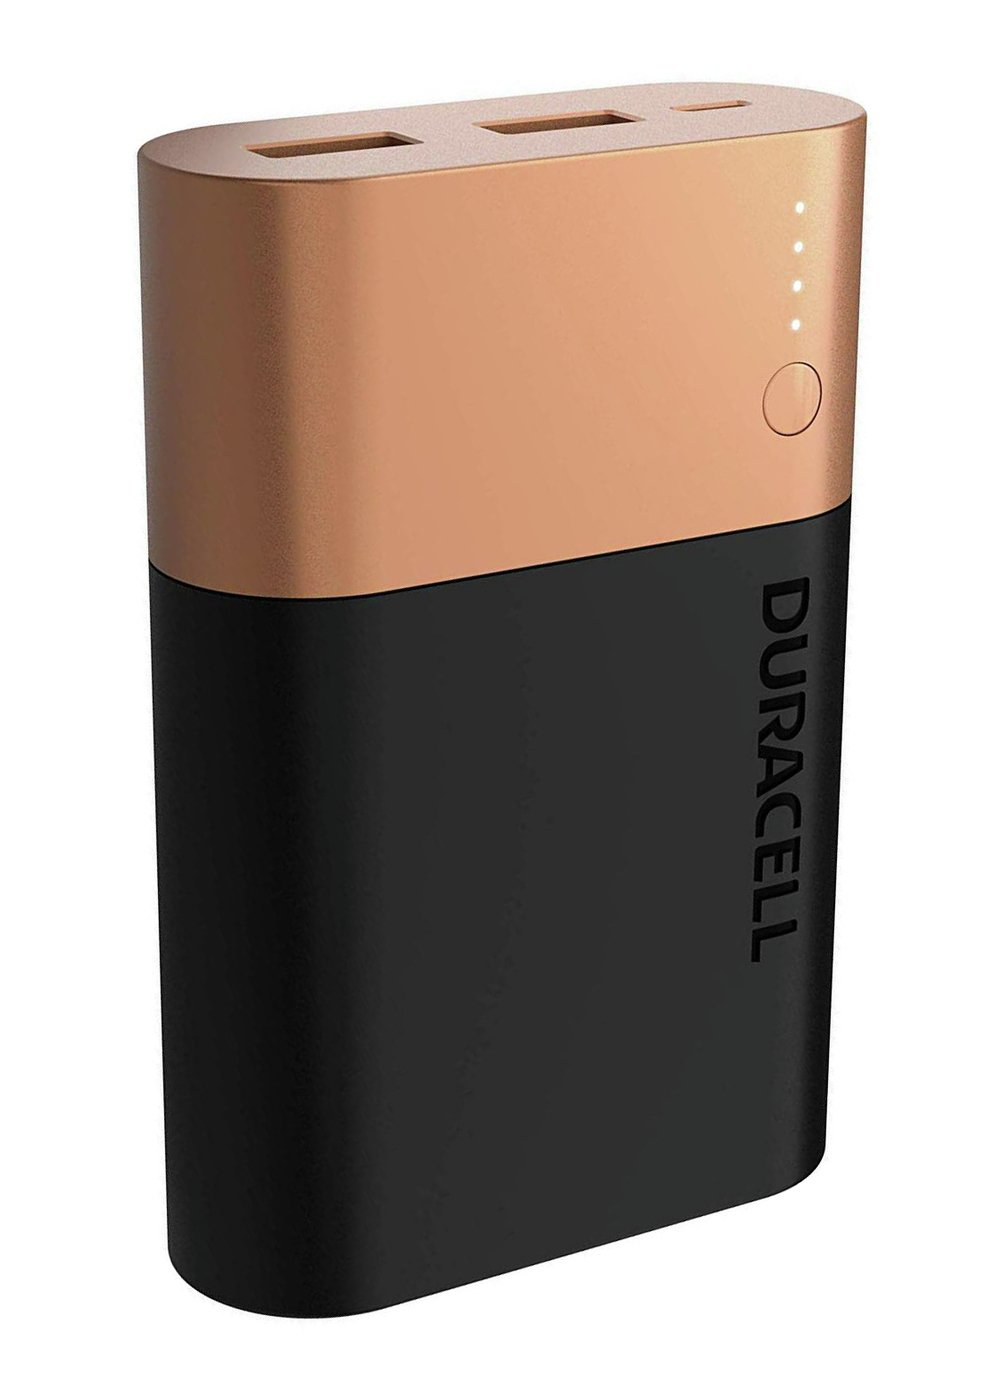 Duracell 10050 mAh Portable Power Bank